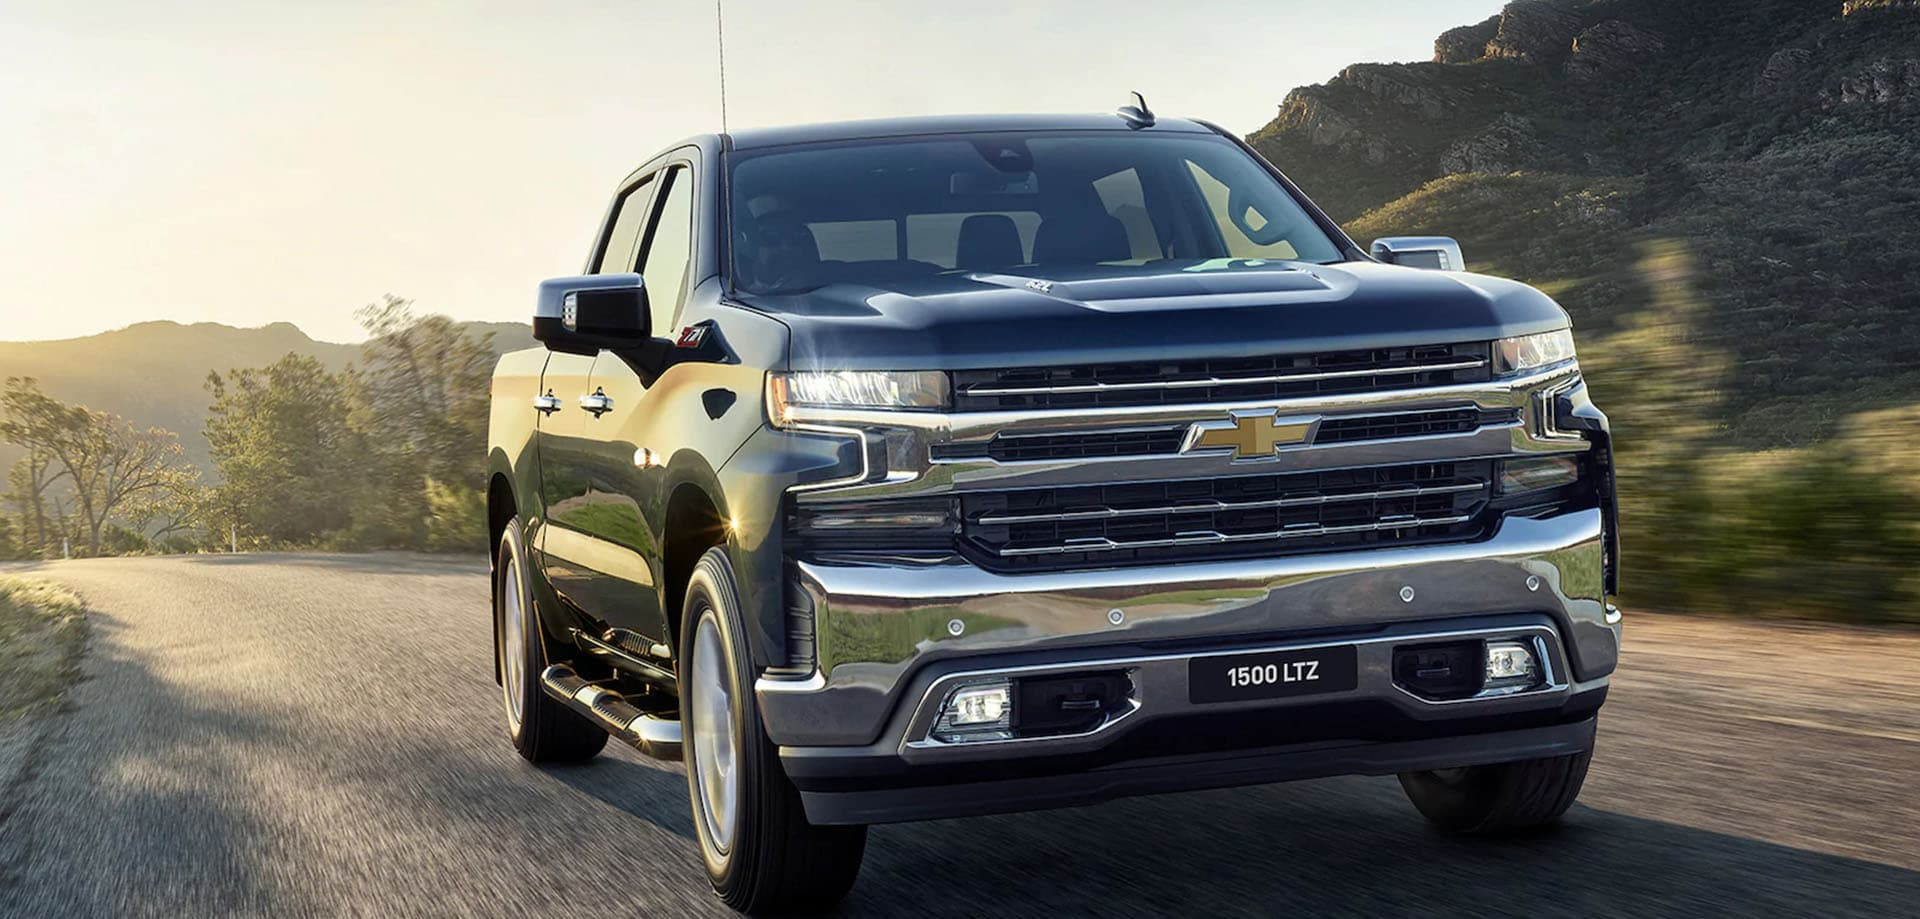 Finance your Chevrolet Image